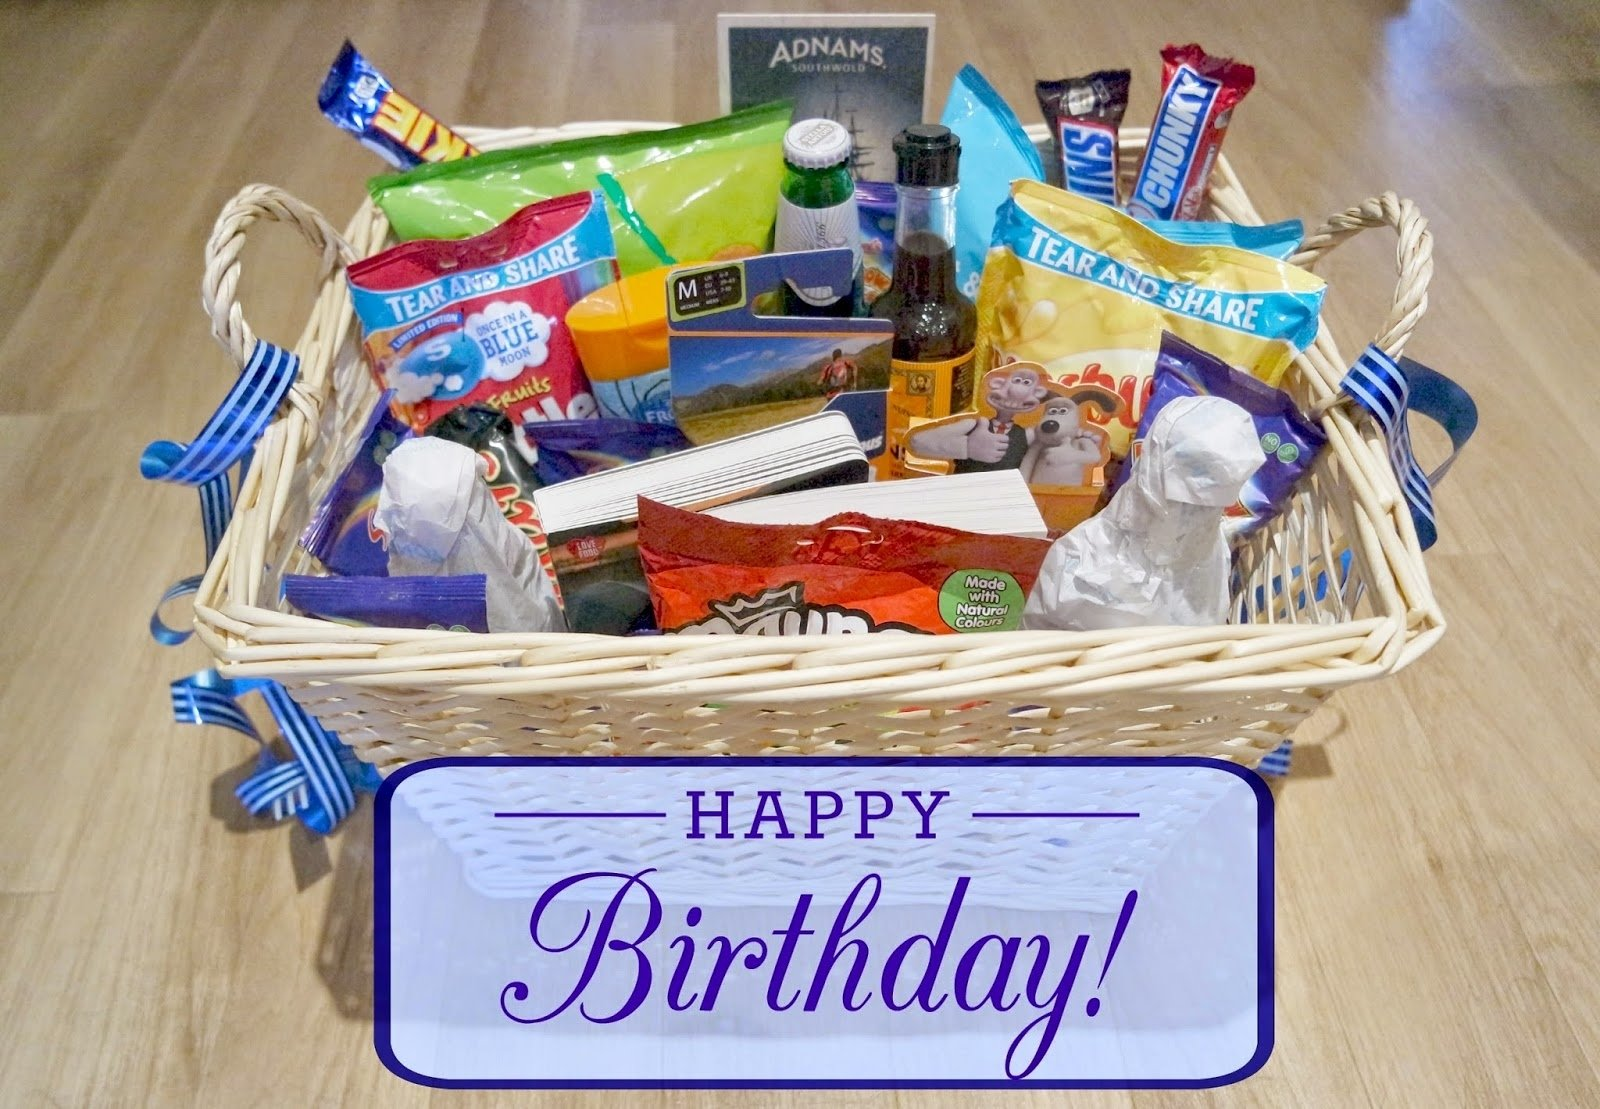 10 Awesome Birthday Present Ideas For Him uptown peach my dads 50th birthday hamper mens gift ideas 19 2020